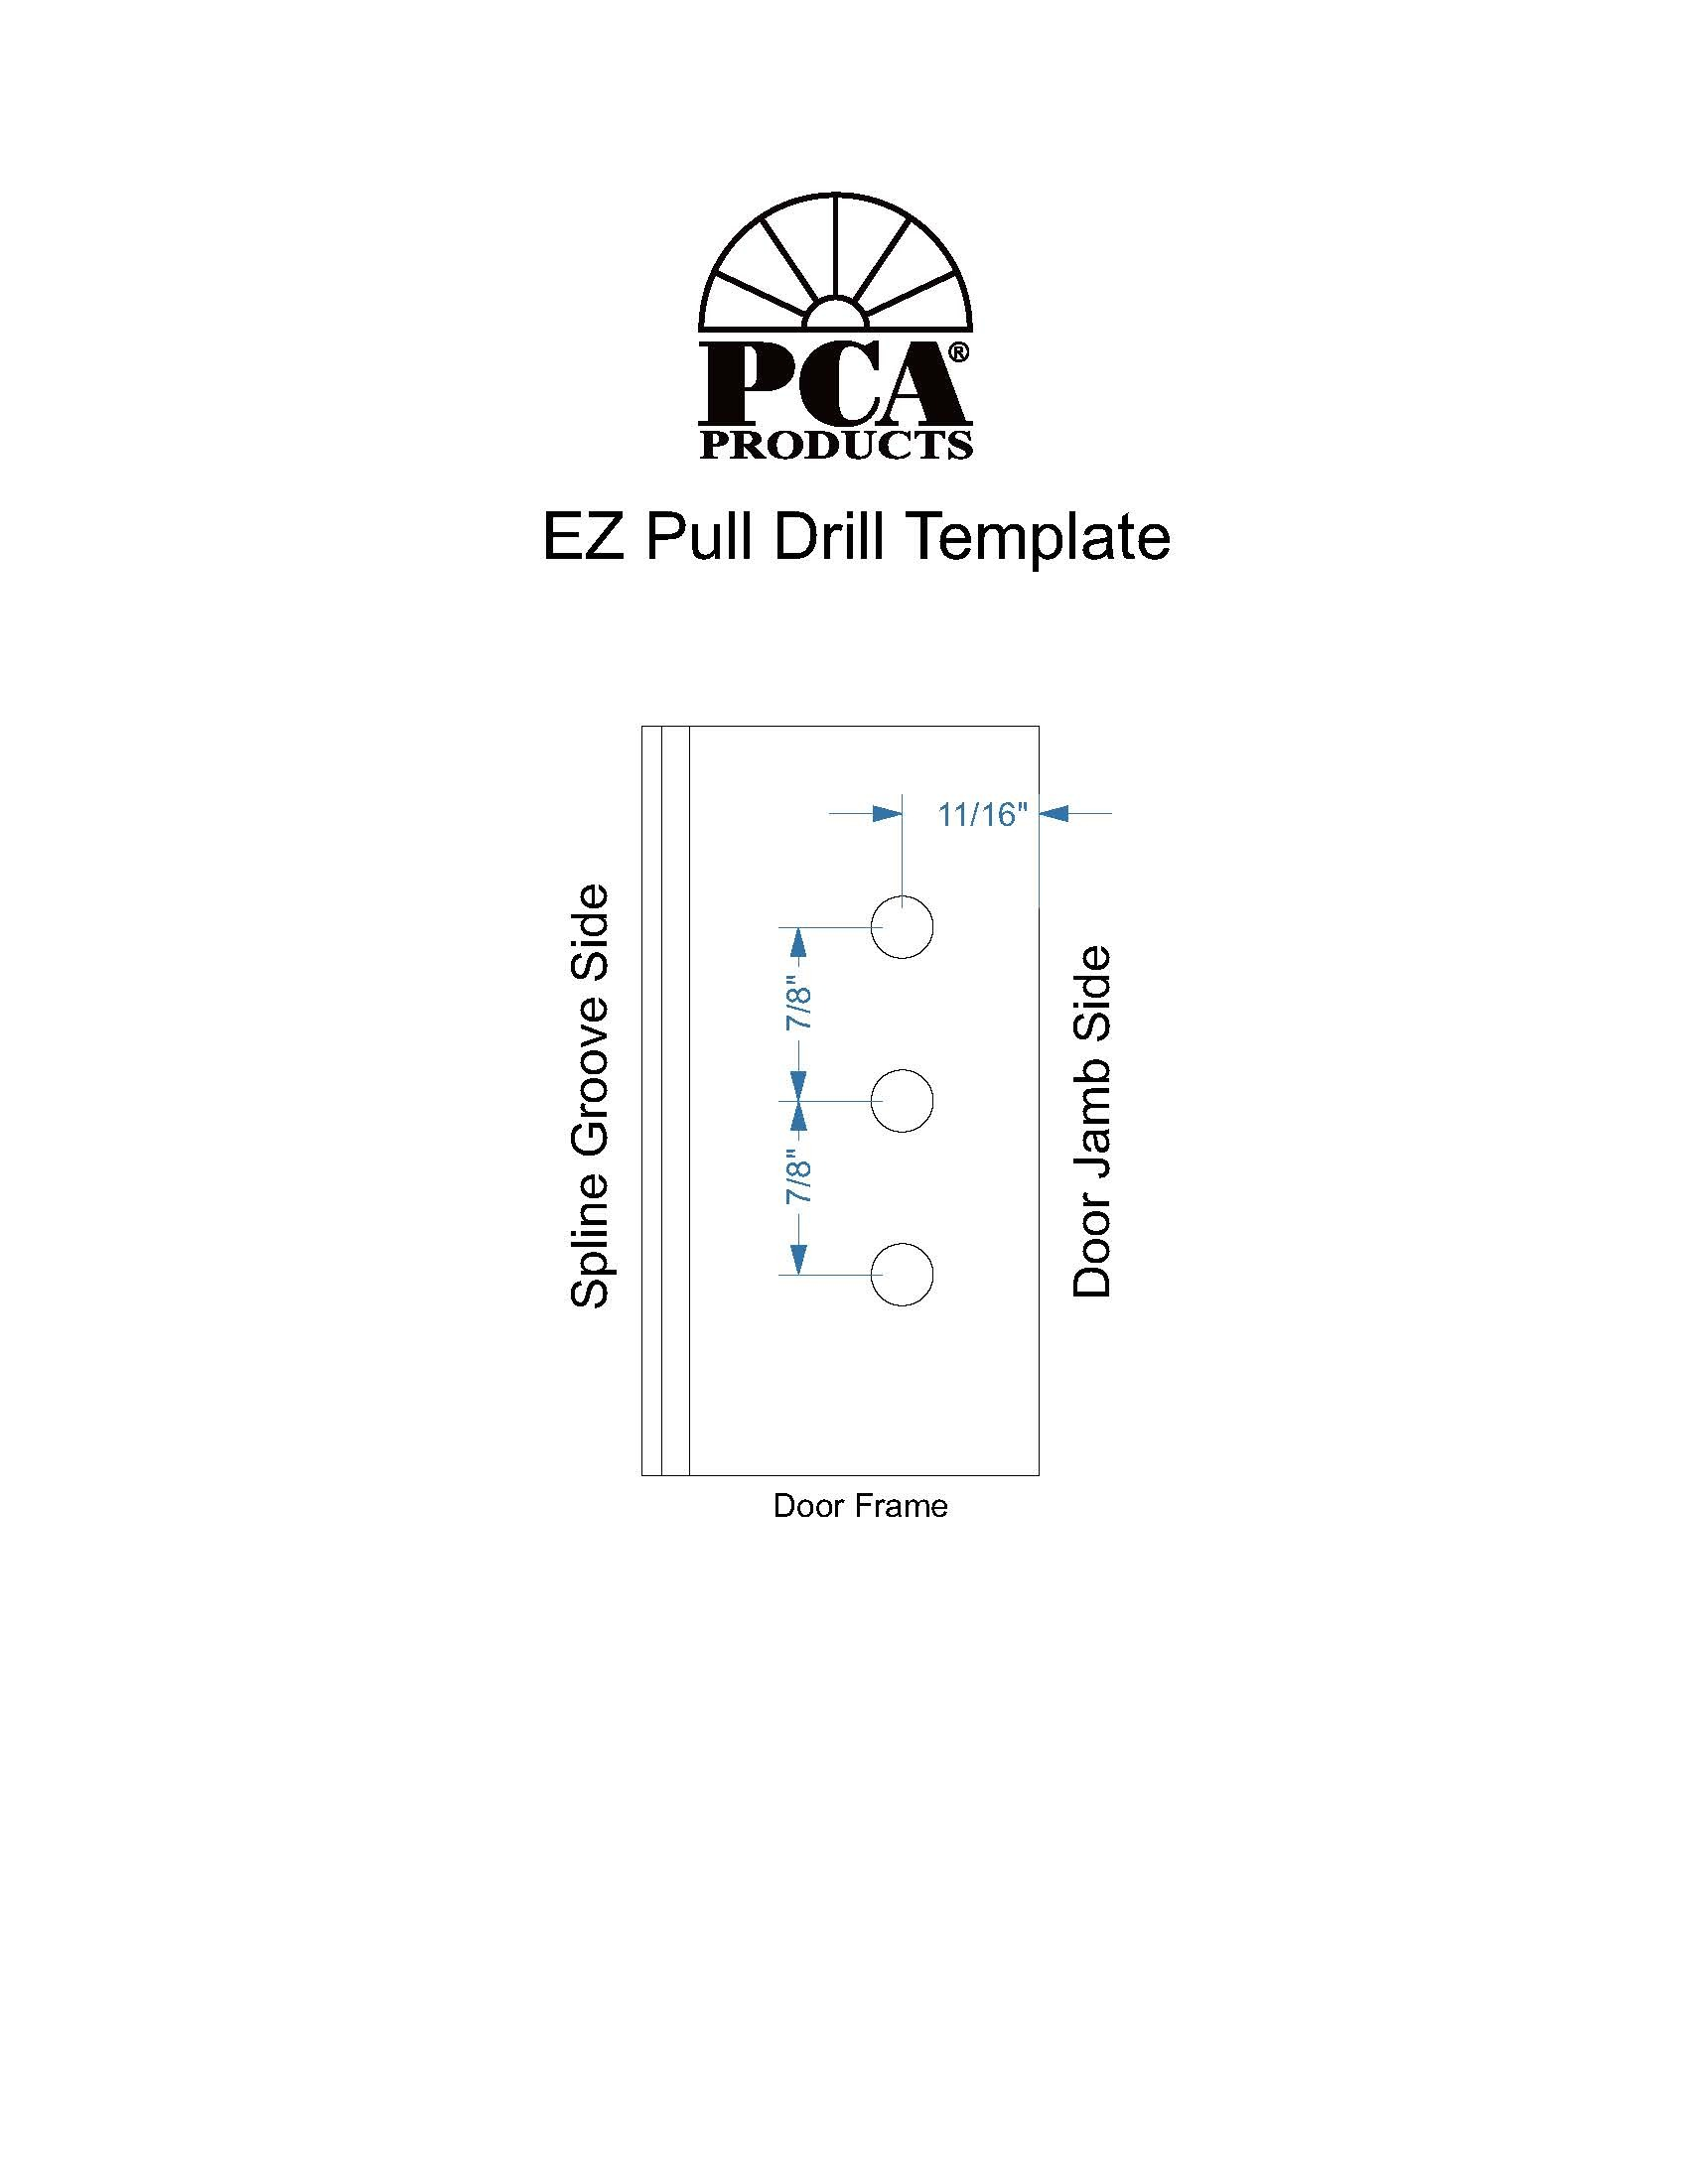 http://s3.pcaproducts.com/documents/EZ-Pull-Drill-Template.jpg